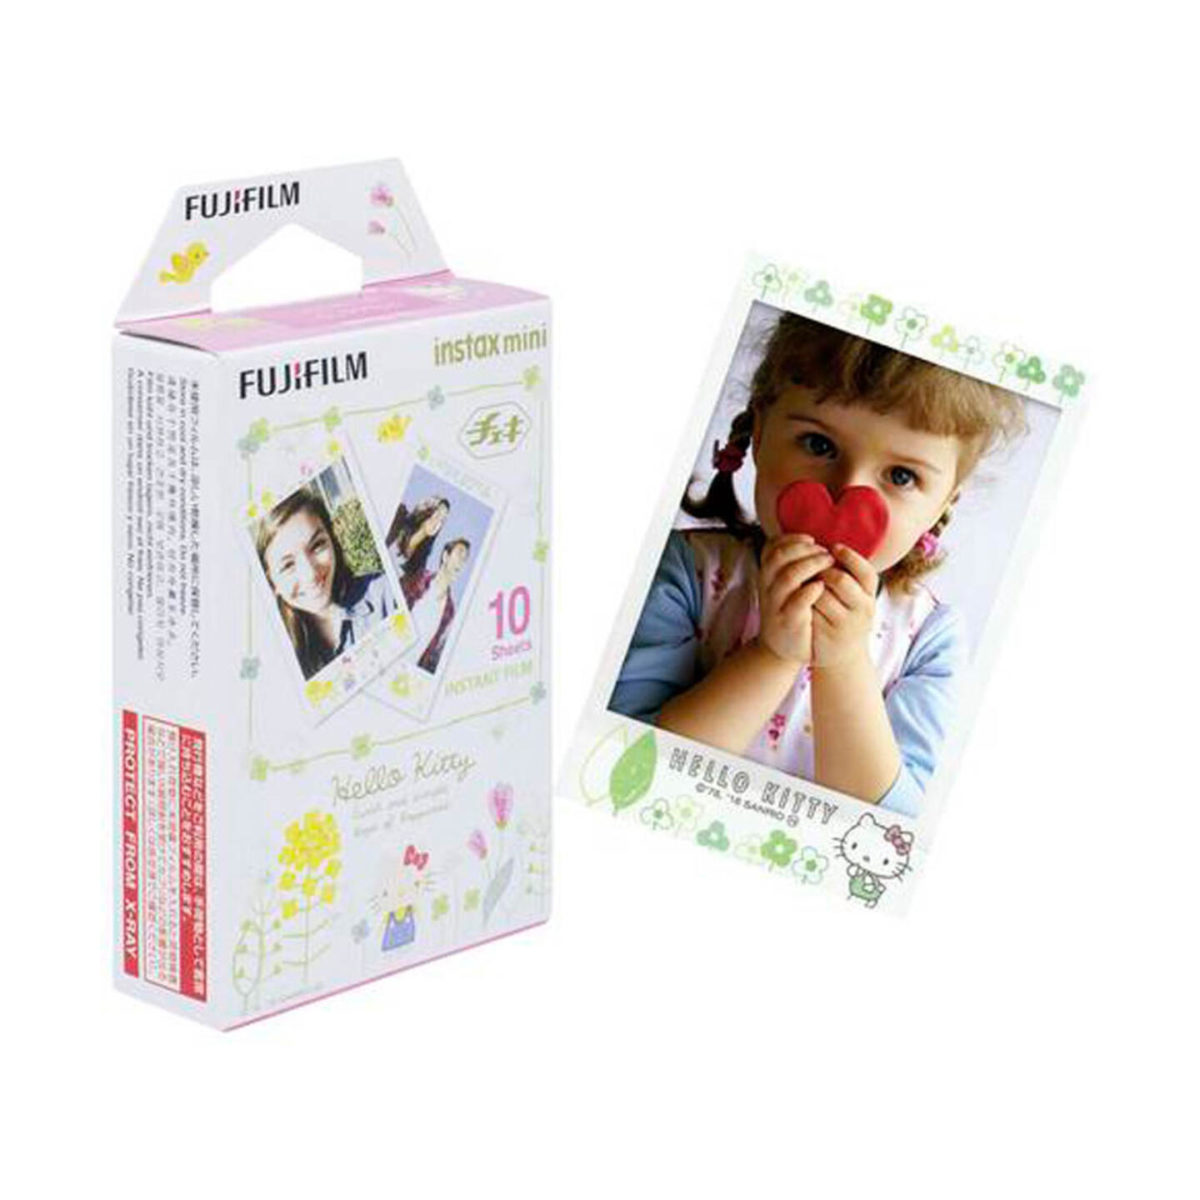 fujifilm_instax_mini_hellokitty_02